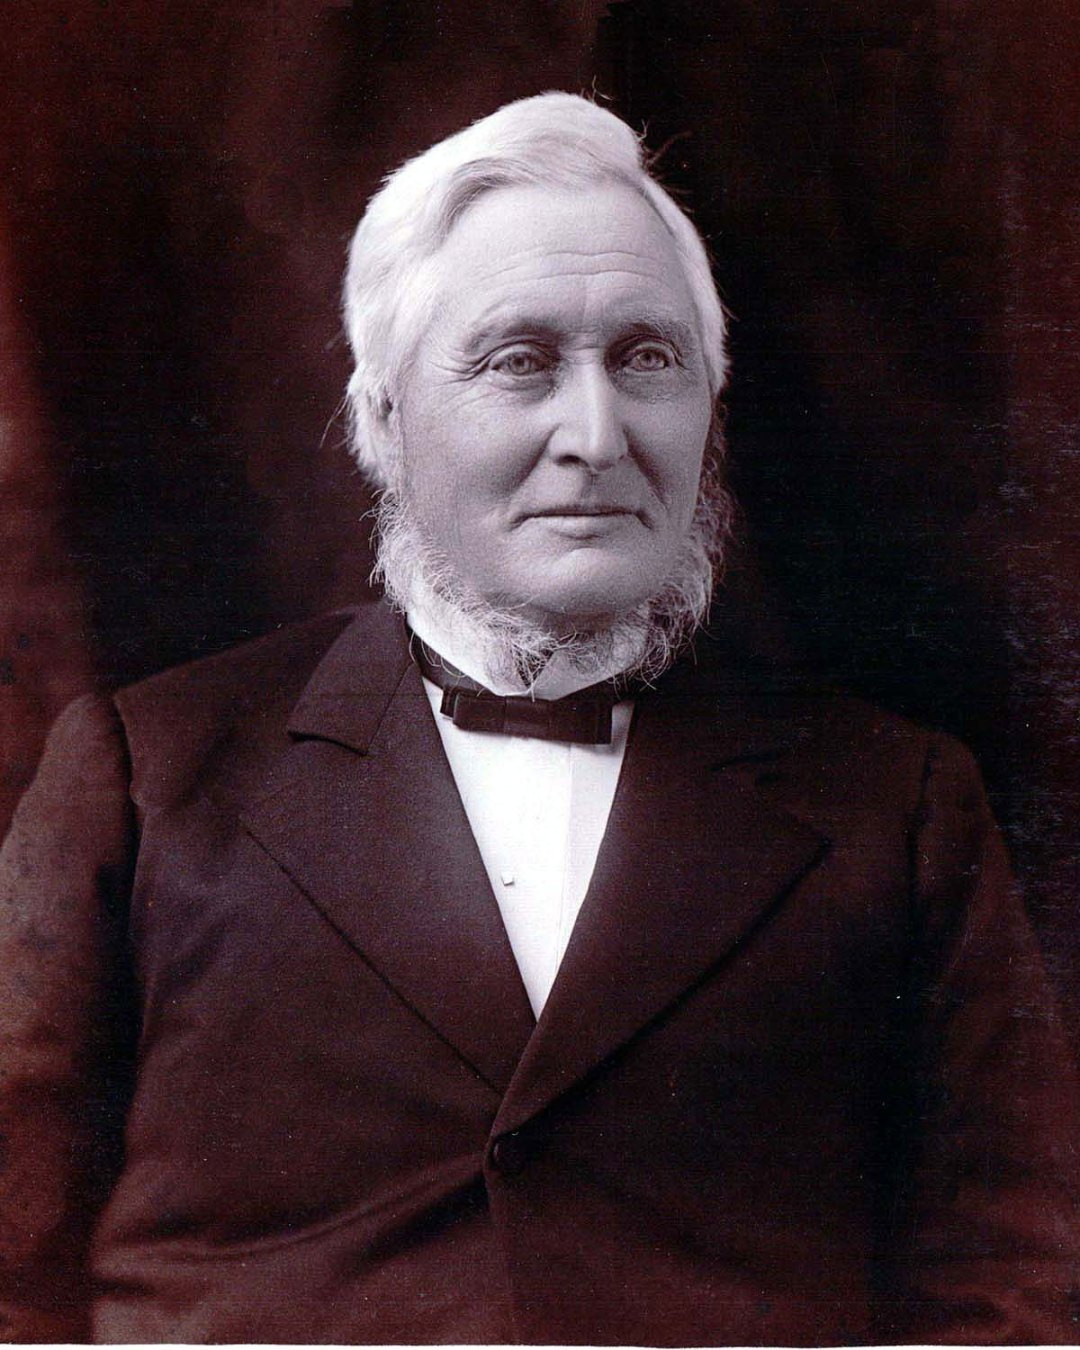 Joshua Pierce, born September 15, 1814